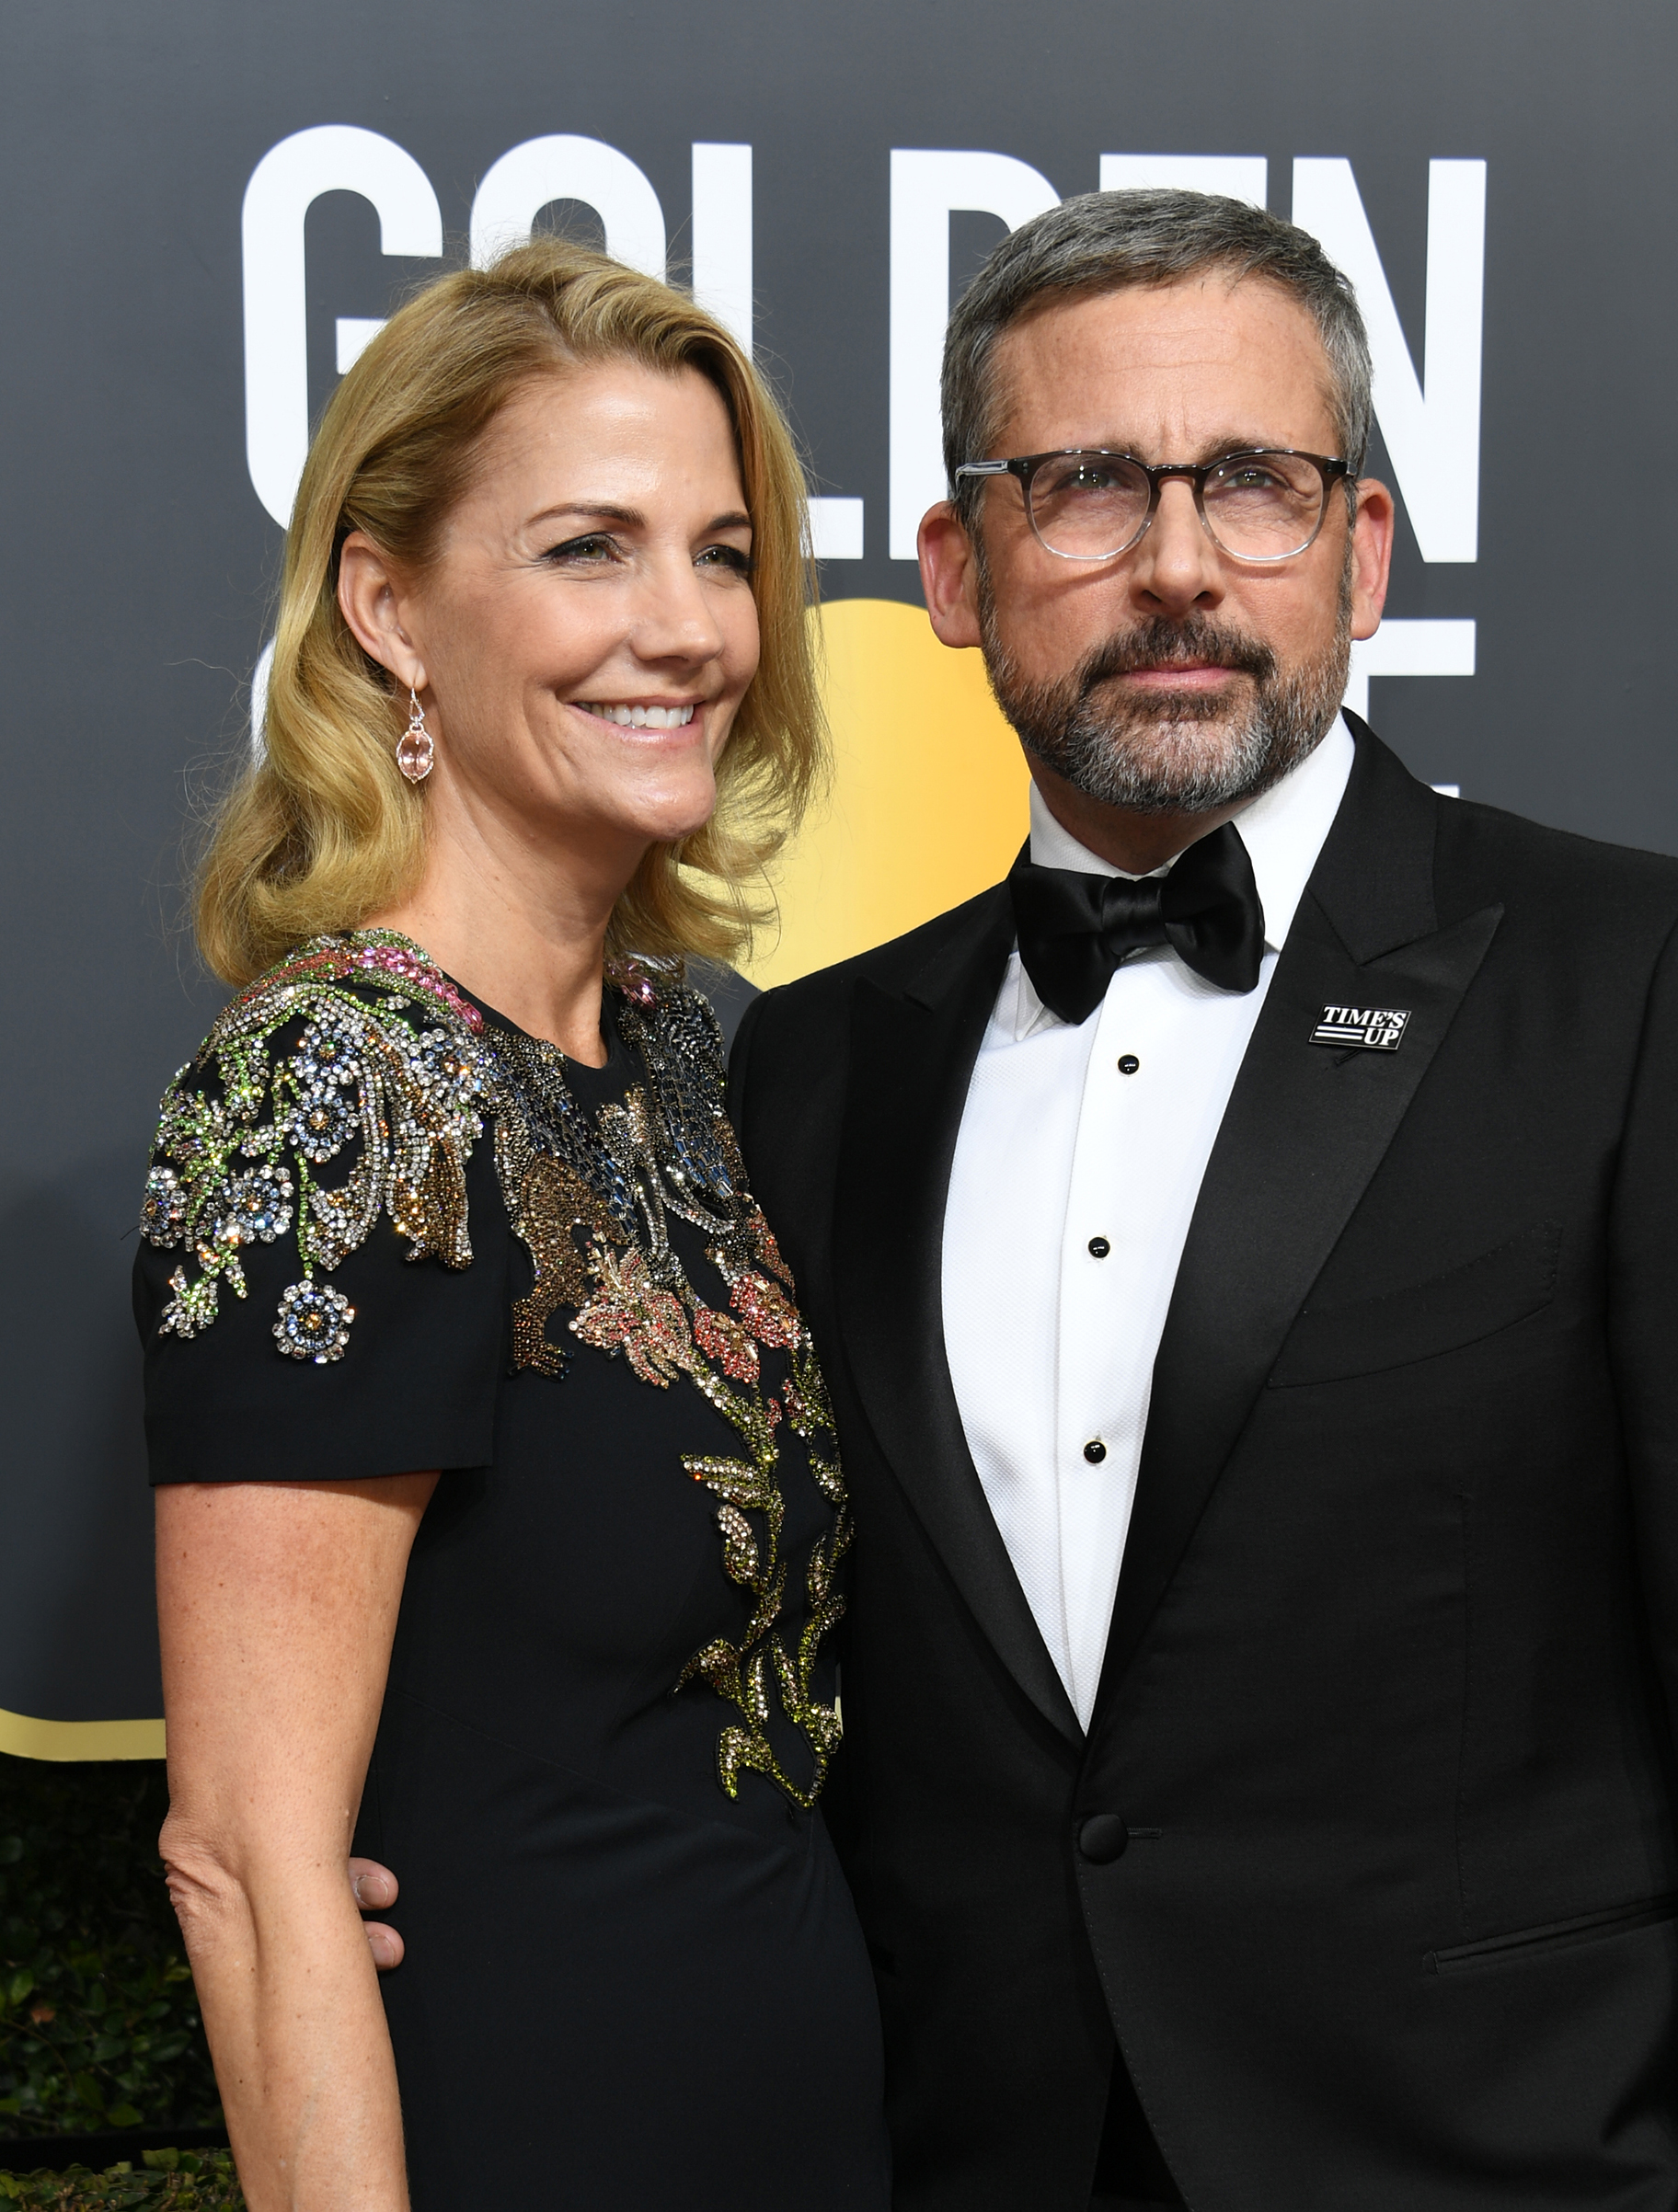 Nancy and Steve Carell arrive for the 75th Golden Globe Awards on January 7, 2018, in Beverly Hills, California.